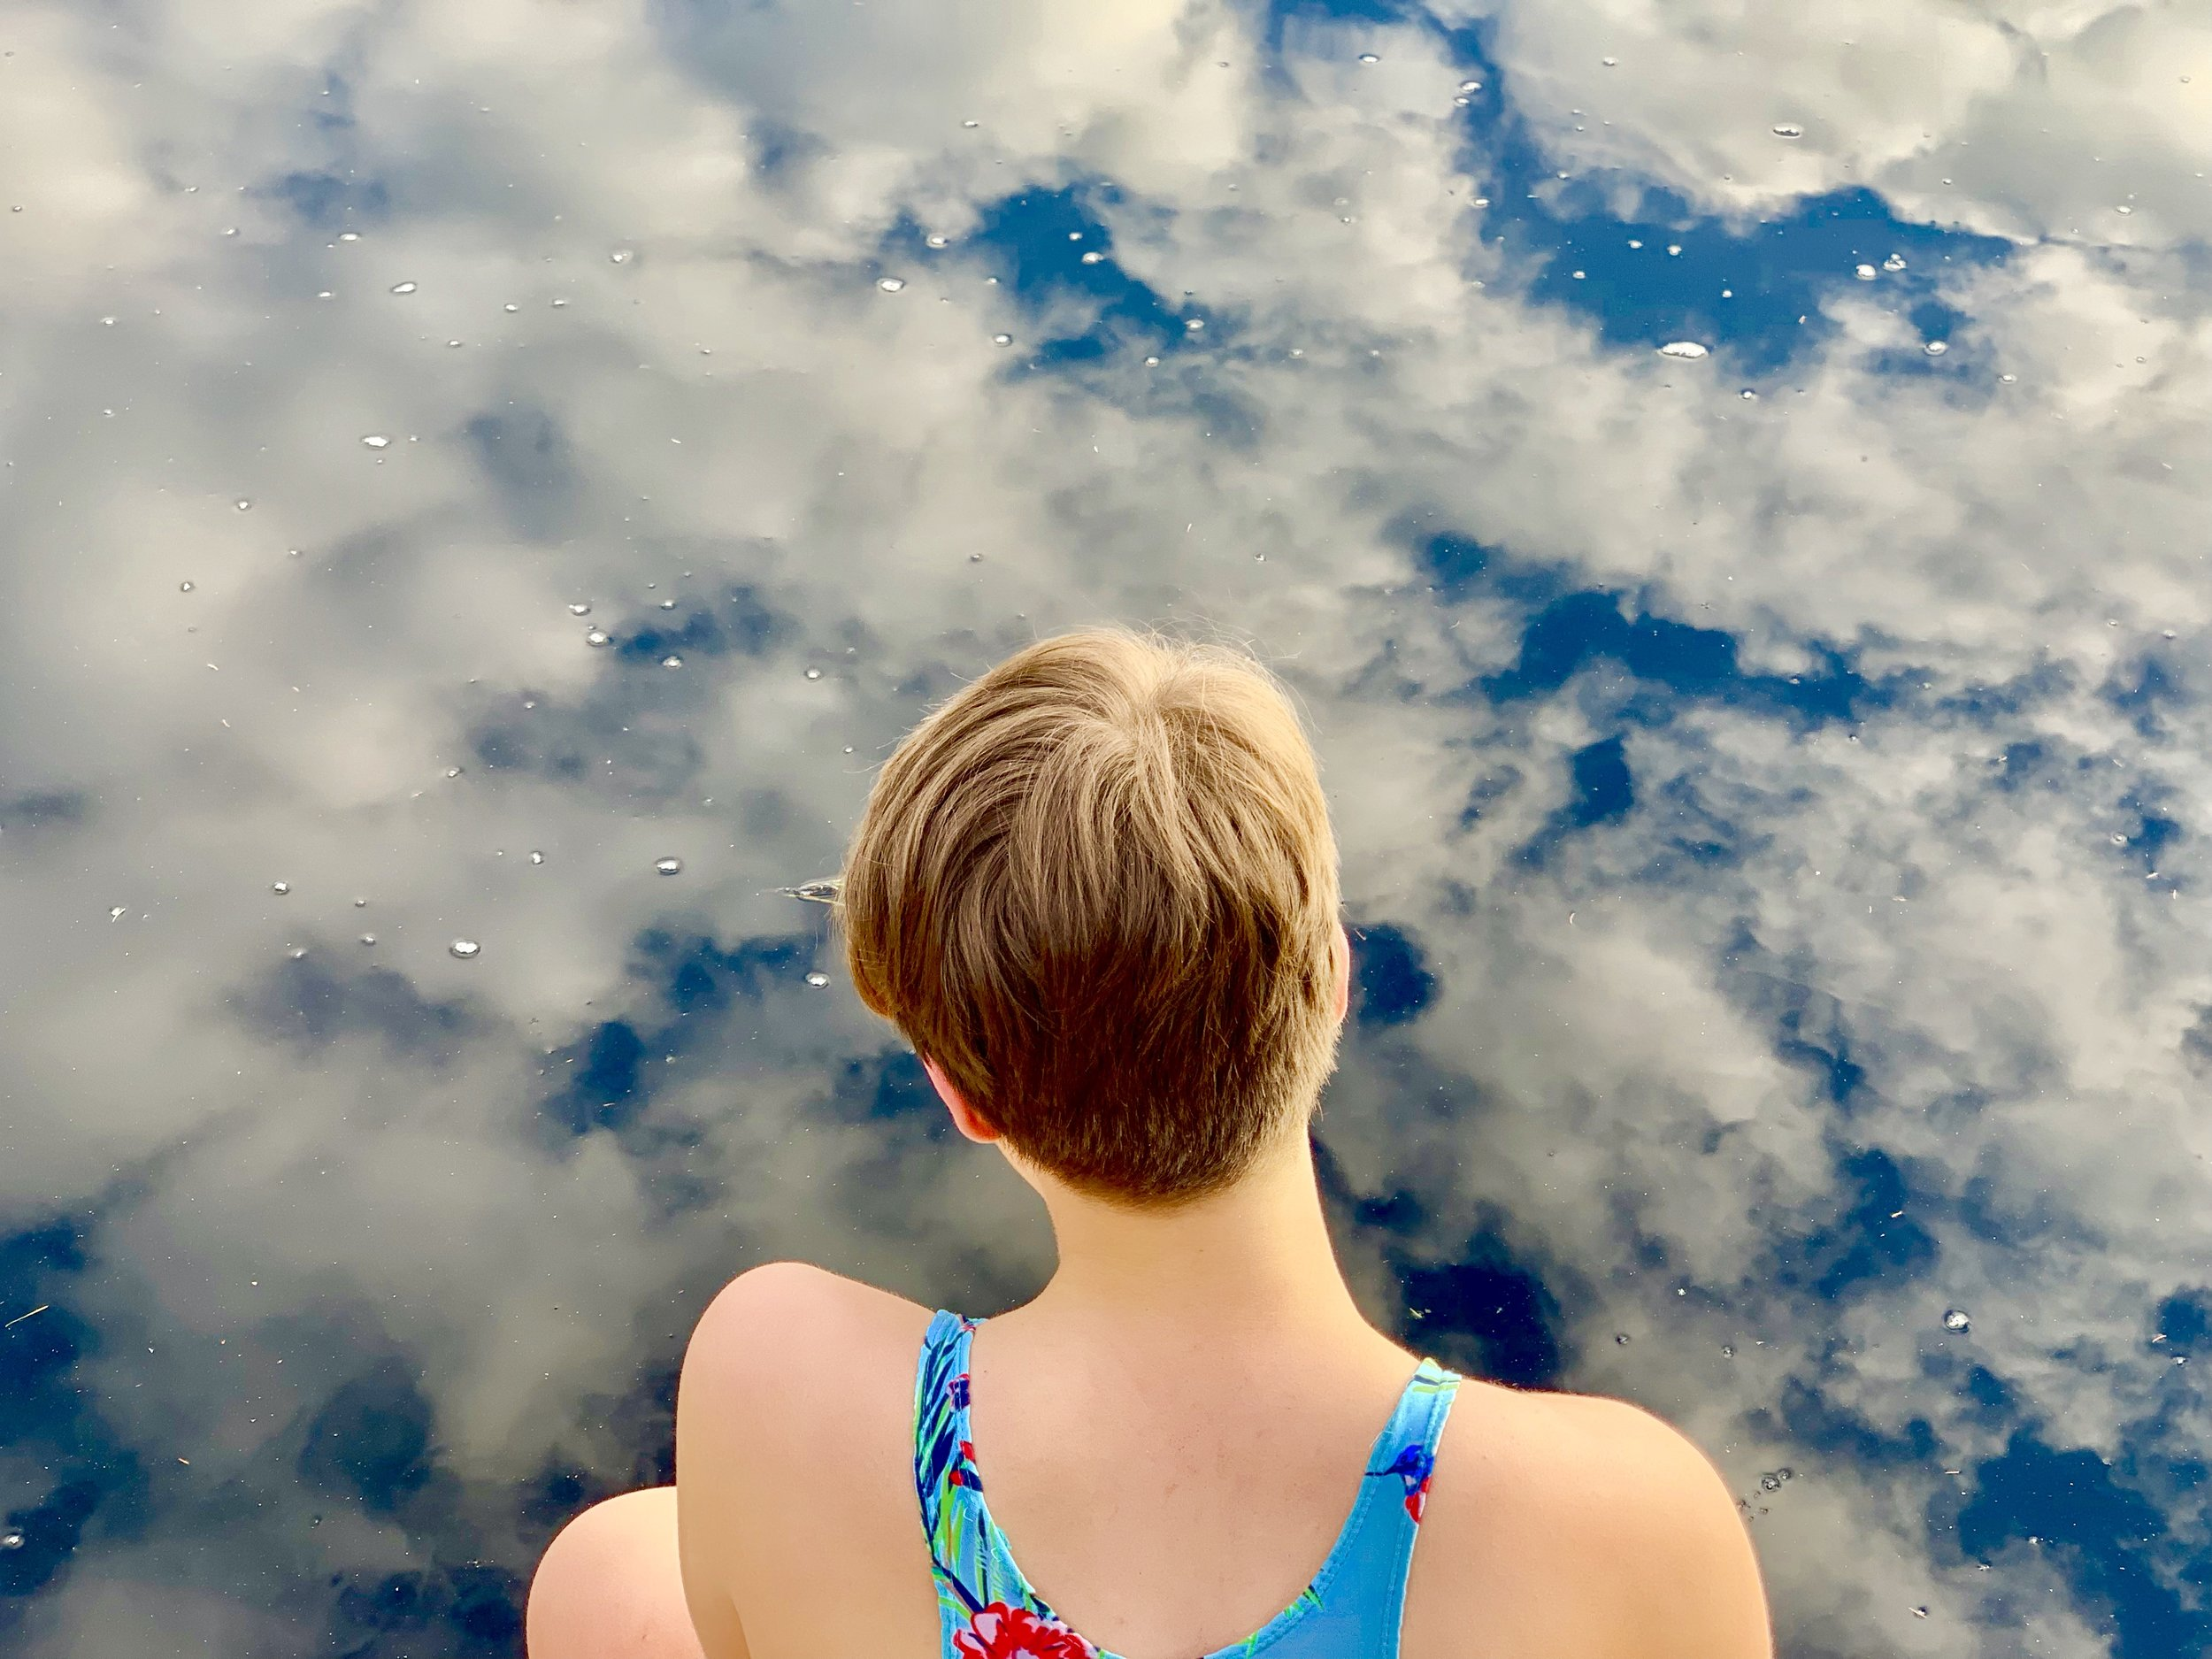 Skyswimming with my daughter in our neighbourhood. Spring 2019